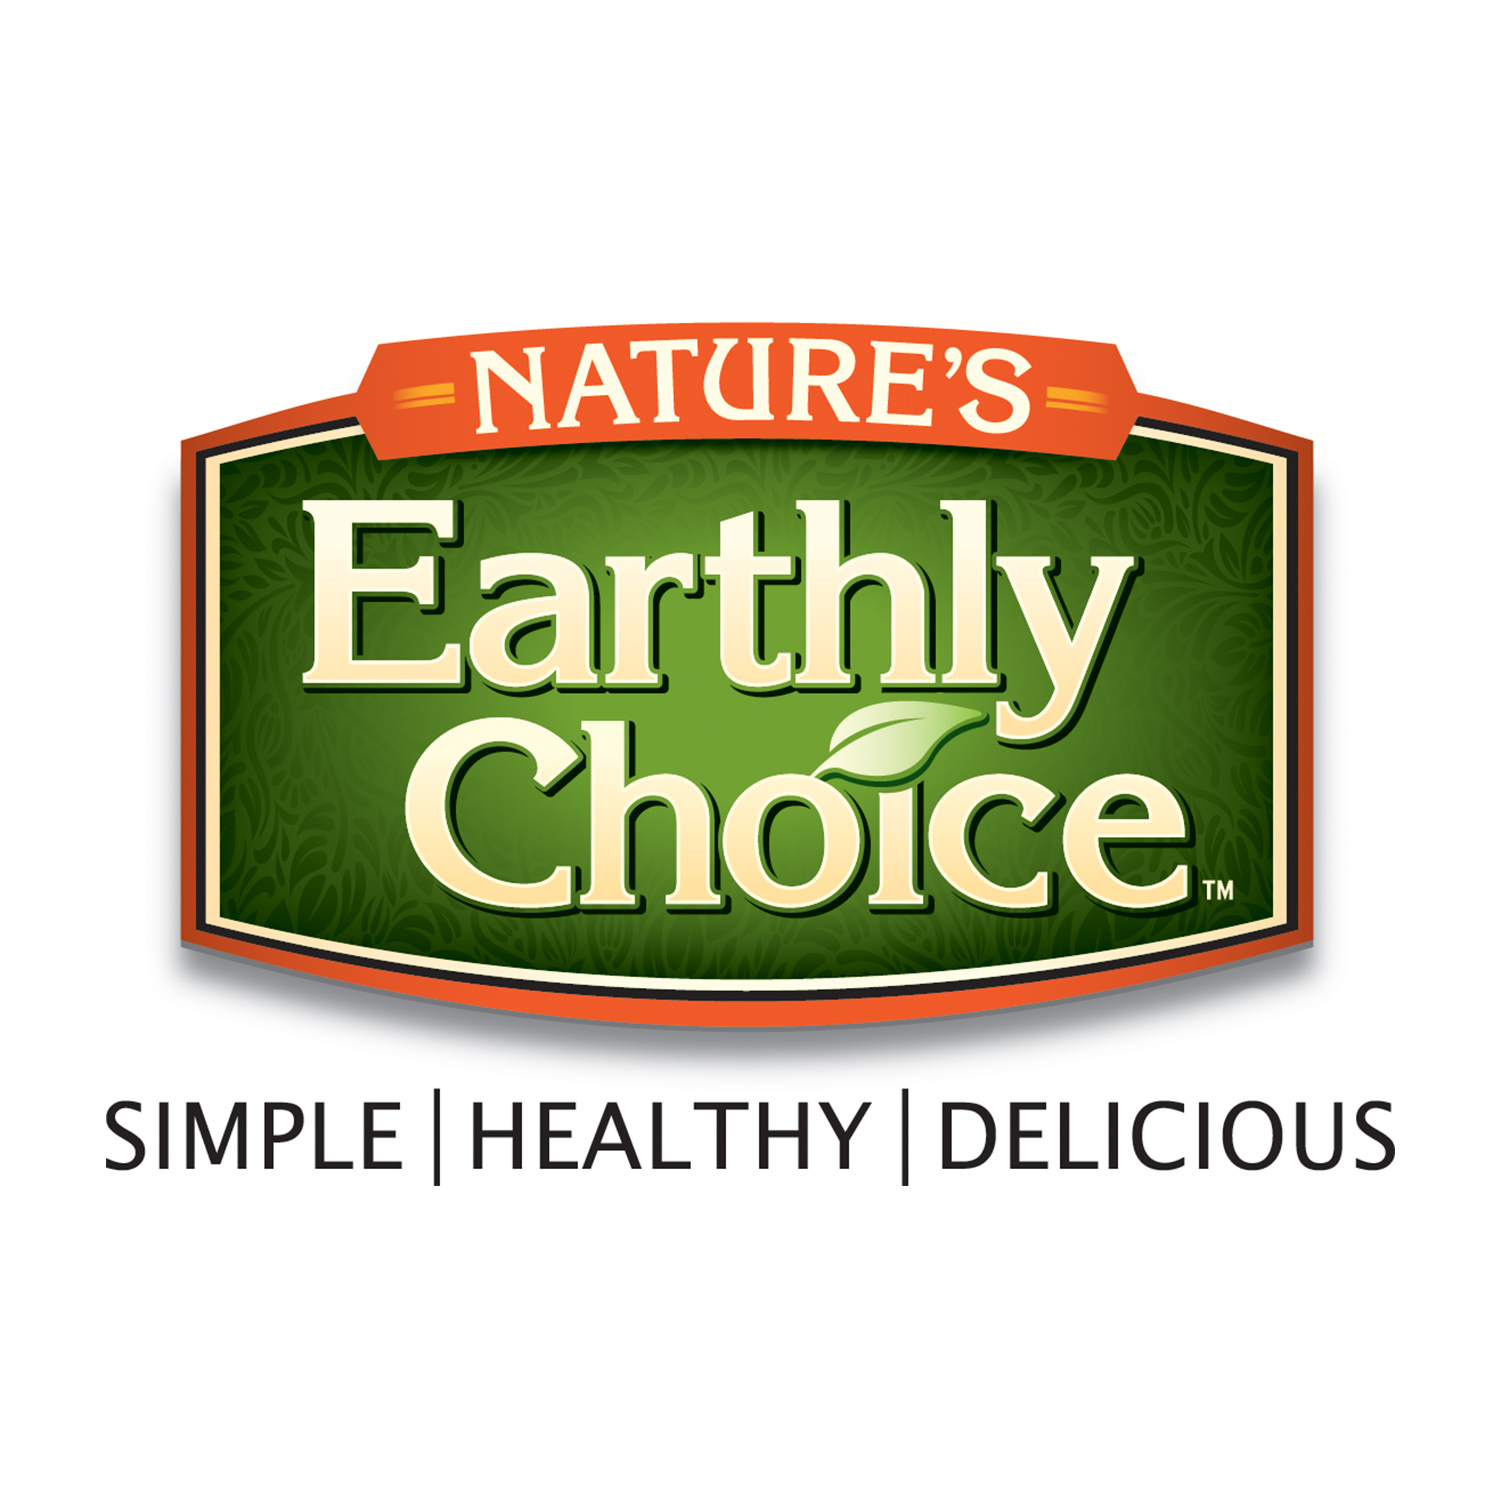 NATURE'S EARTHLY CHOICE™